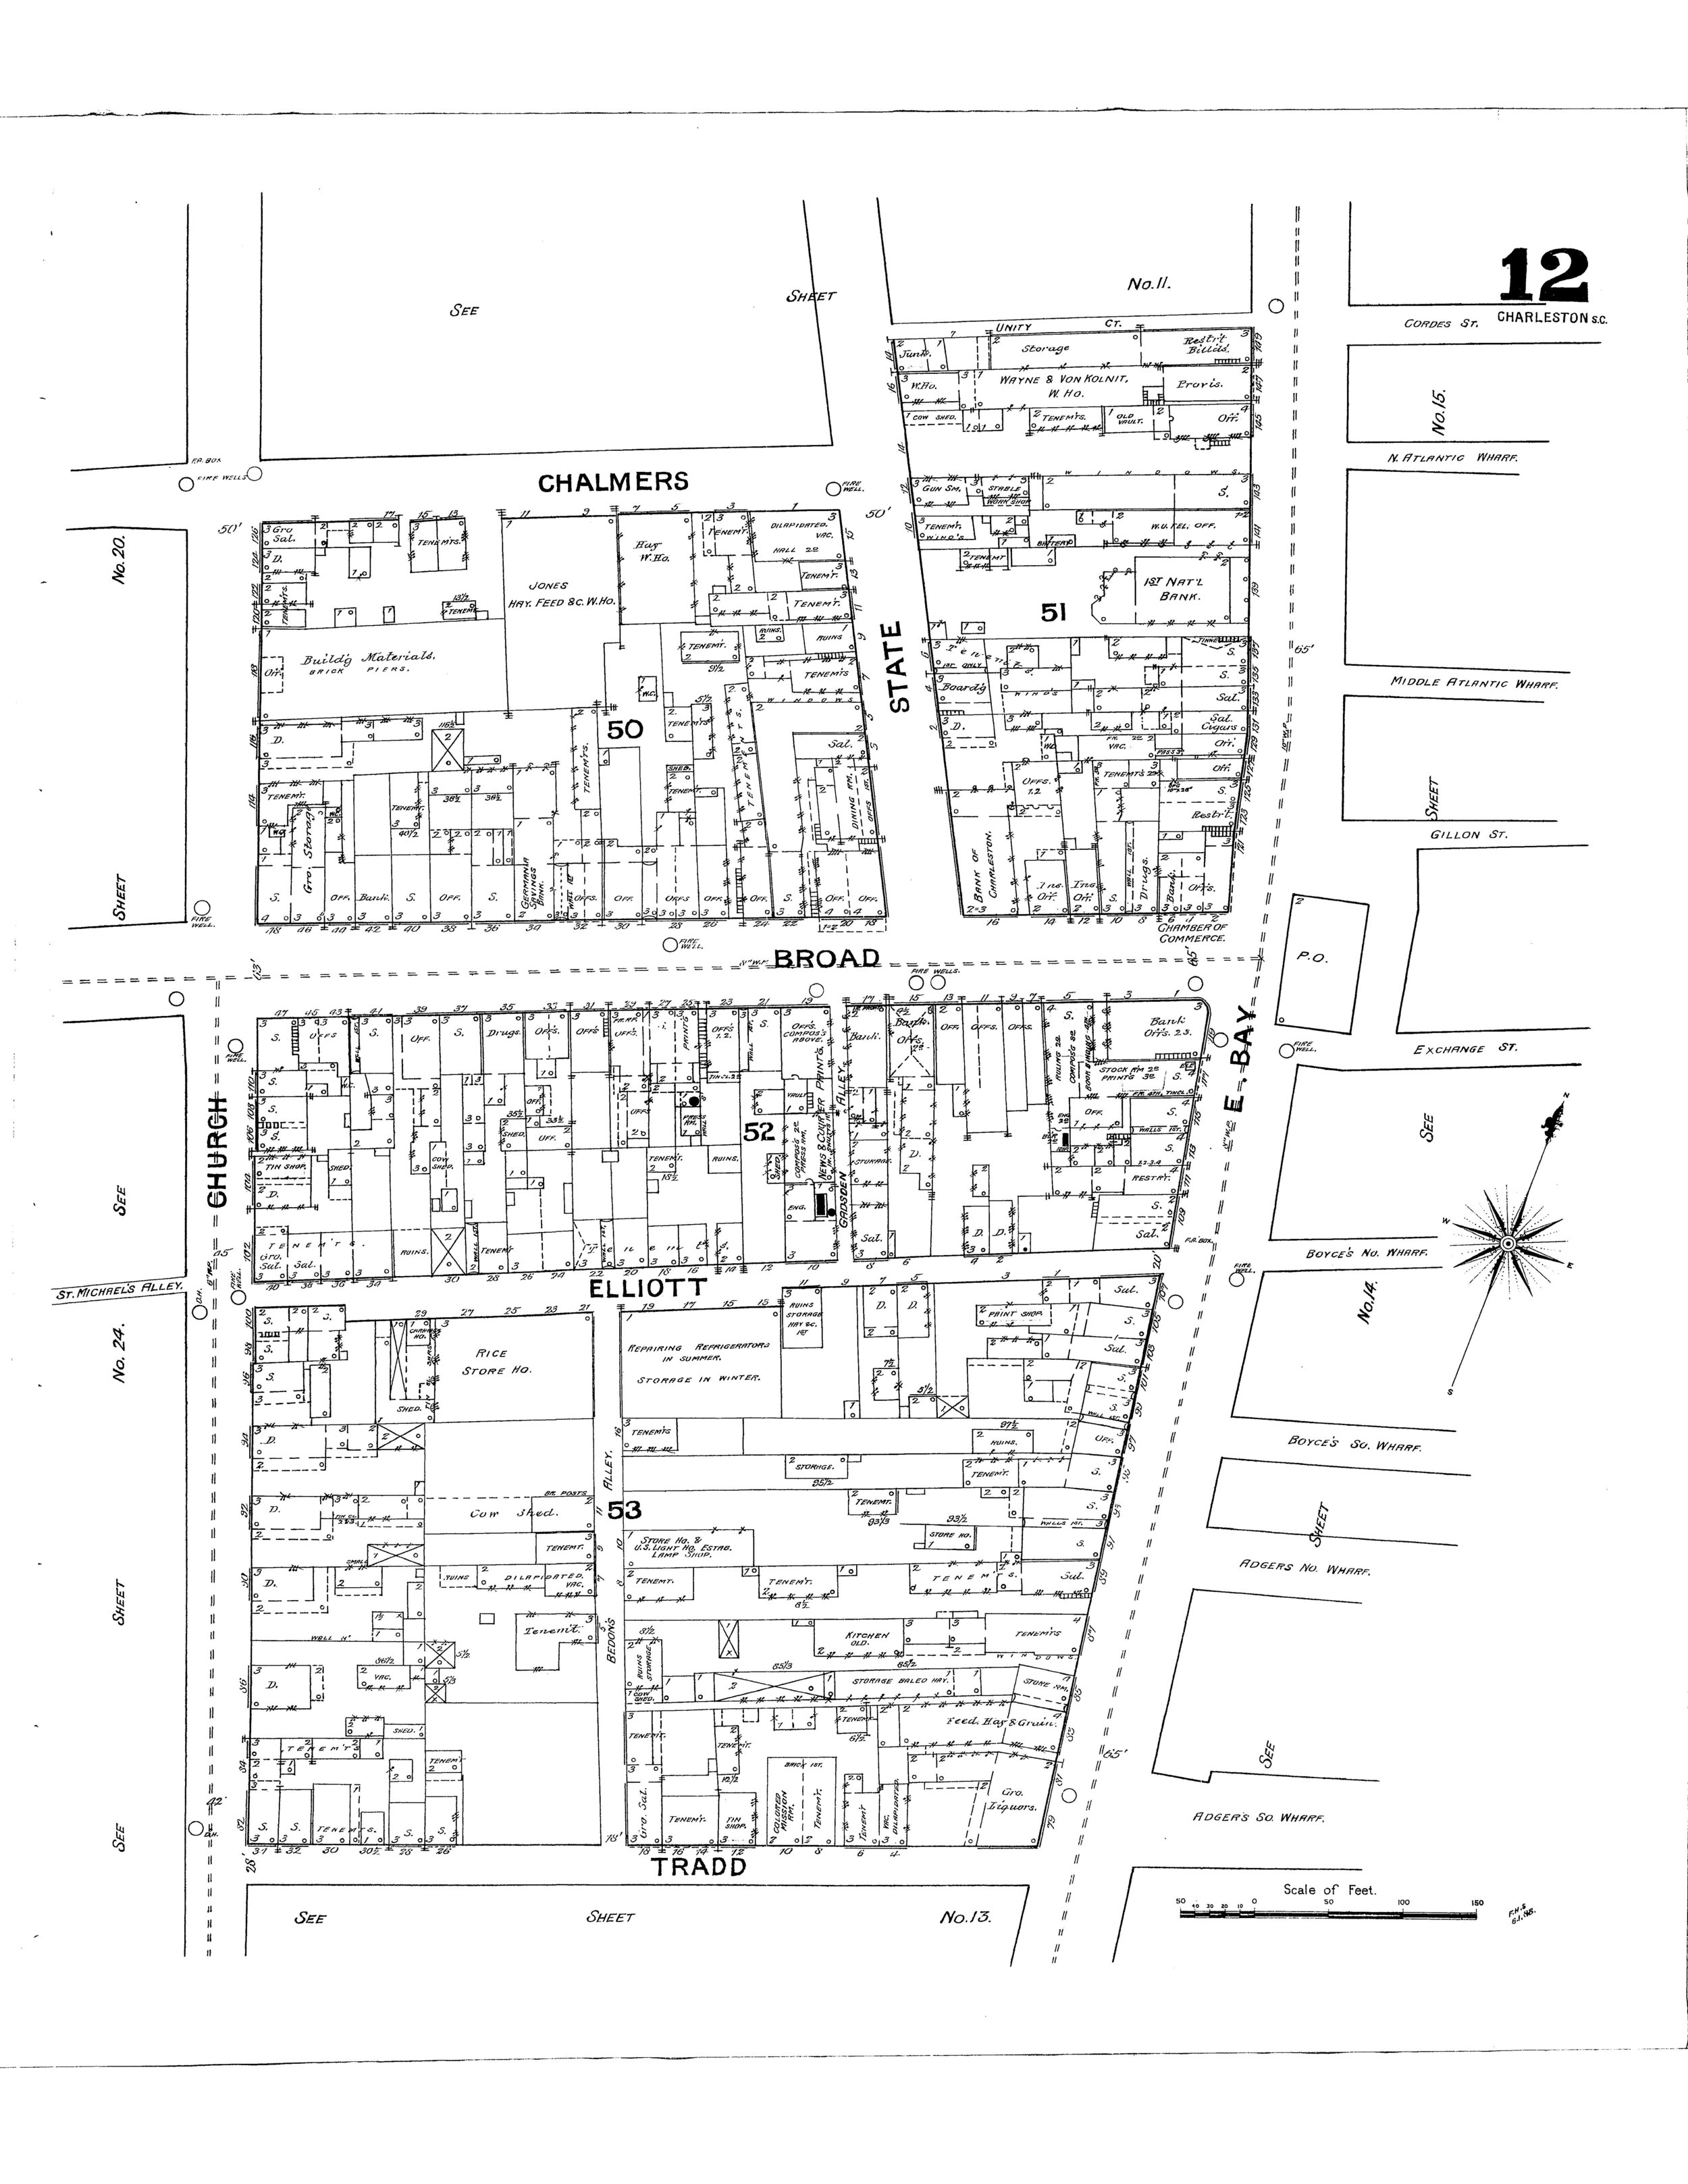 - April 24, 2017Sanborn Maps date back to the mid 19th century and were originally created for assessing fire insurance liability in cities around the country. In our office, we use these maps to see how the use and structures on properties have evolved over time throughout the city, using maps from as early as 1884. Seeing this evolution helps understand the history of the city. Below is a map from 1888 we used for a project located on Broad Street, in the heart of downtown.